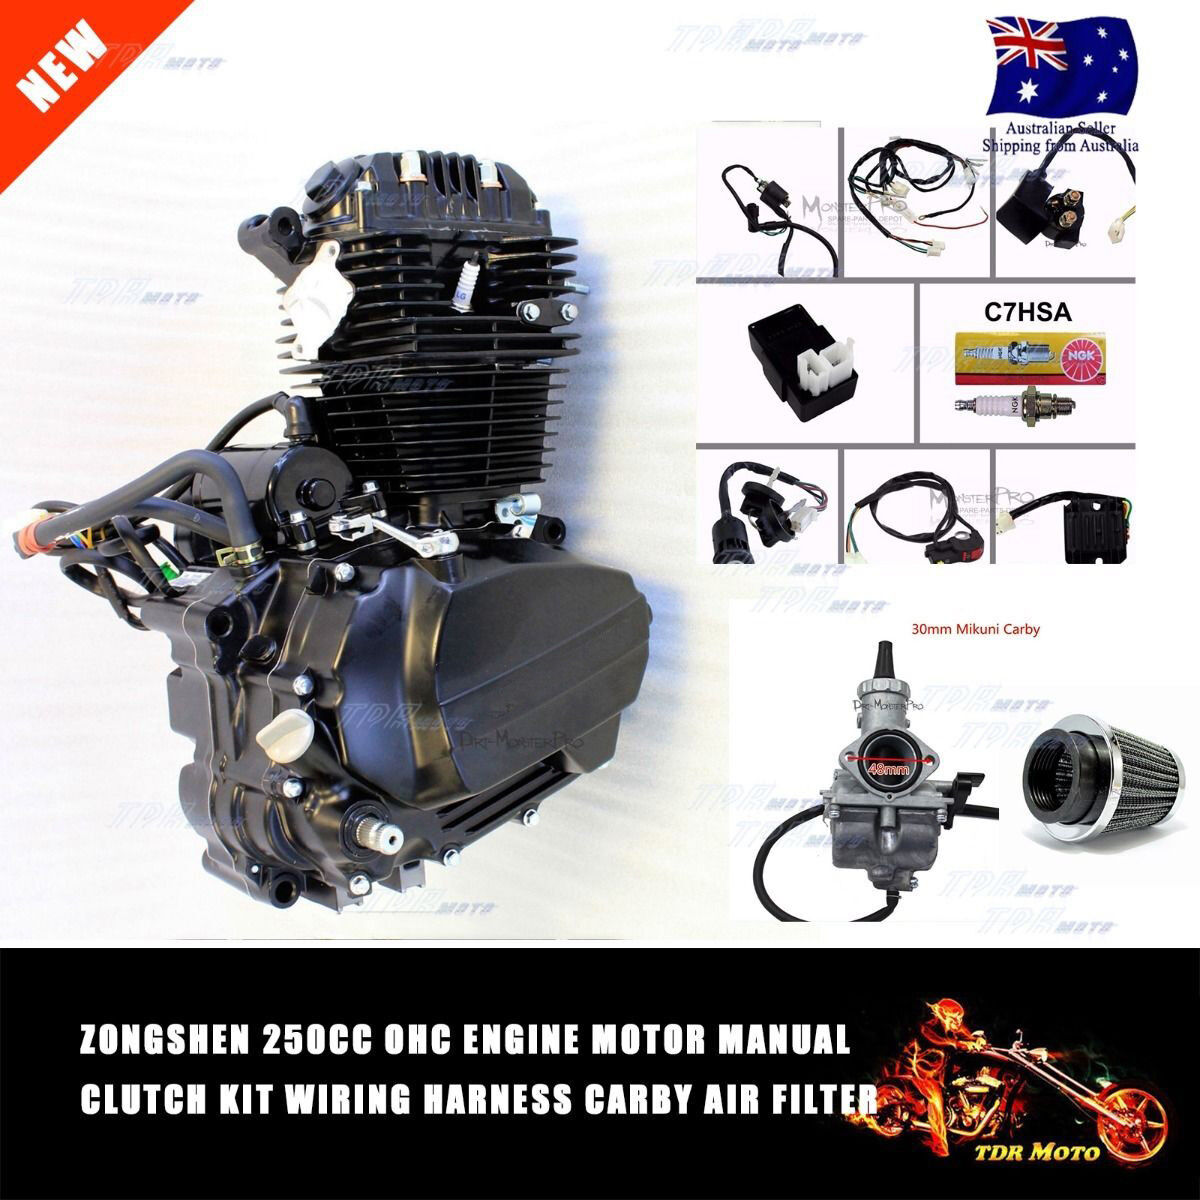 Pit Bike Wiring Harness 250cc Zongshen Ohc Air Cooled Engine Motor Loom Carby Dirt